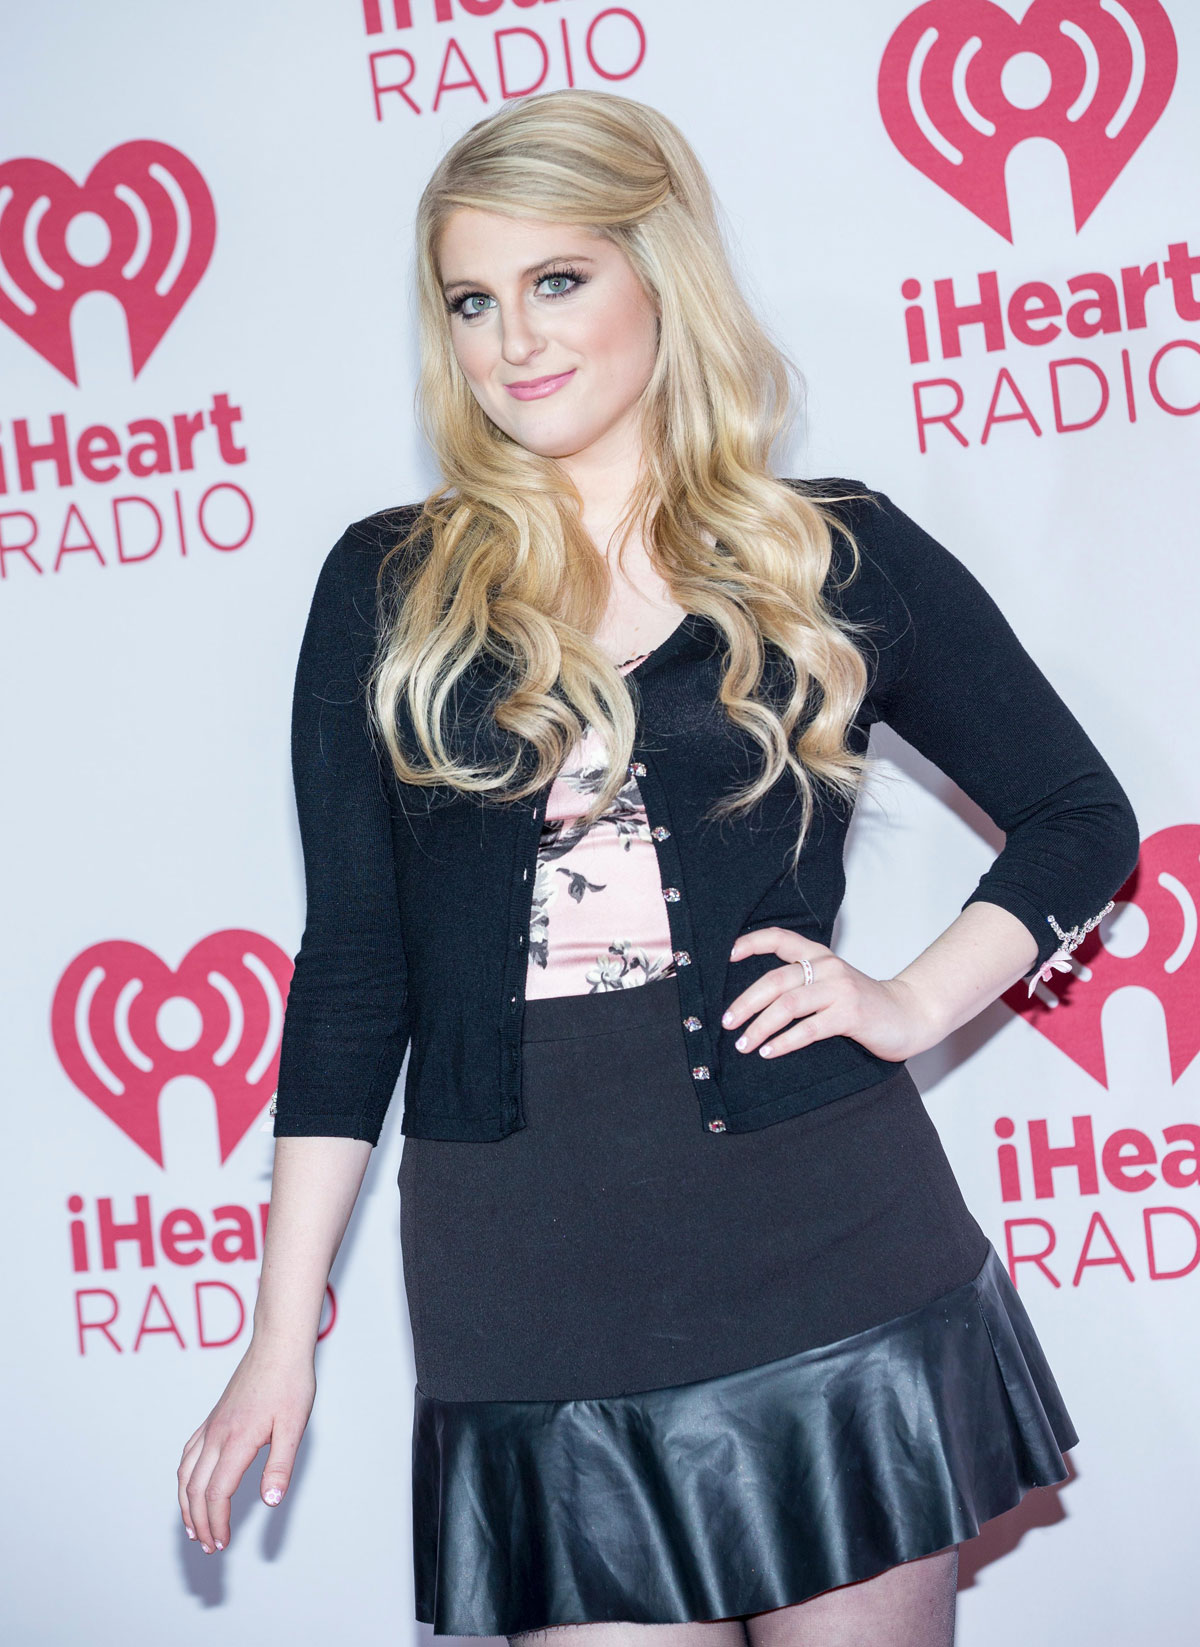 Meghan Trainor At Iheartradio Music Festival Leather